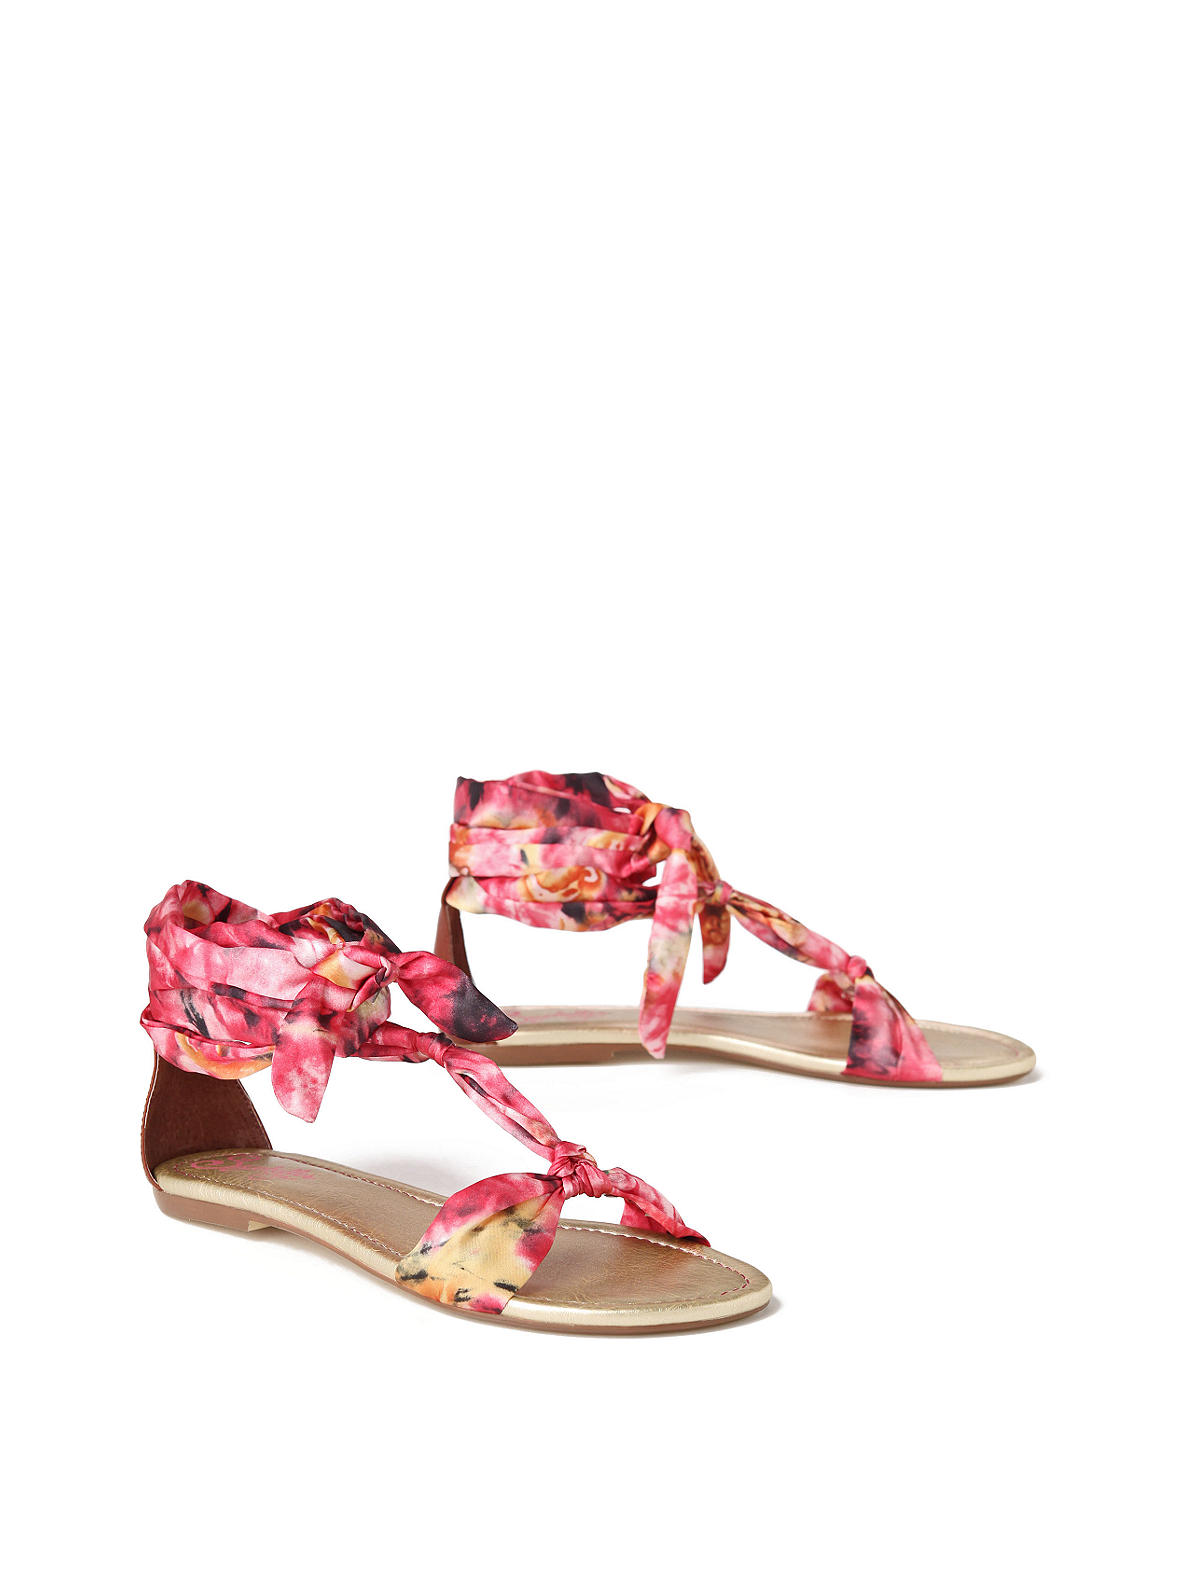 Tied & Dyed Sandals - Anthropologie.com :  tied dyed designer anthropologie flats